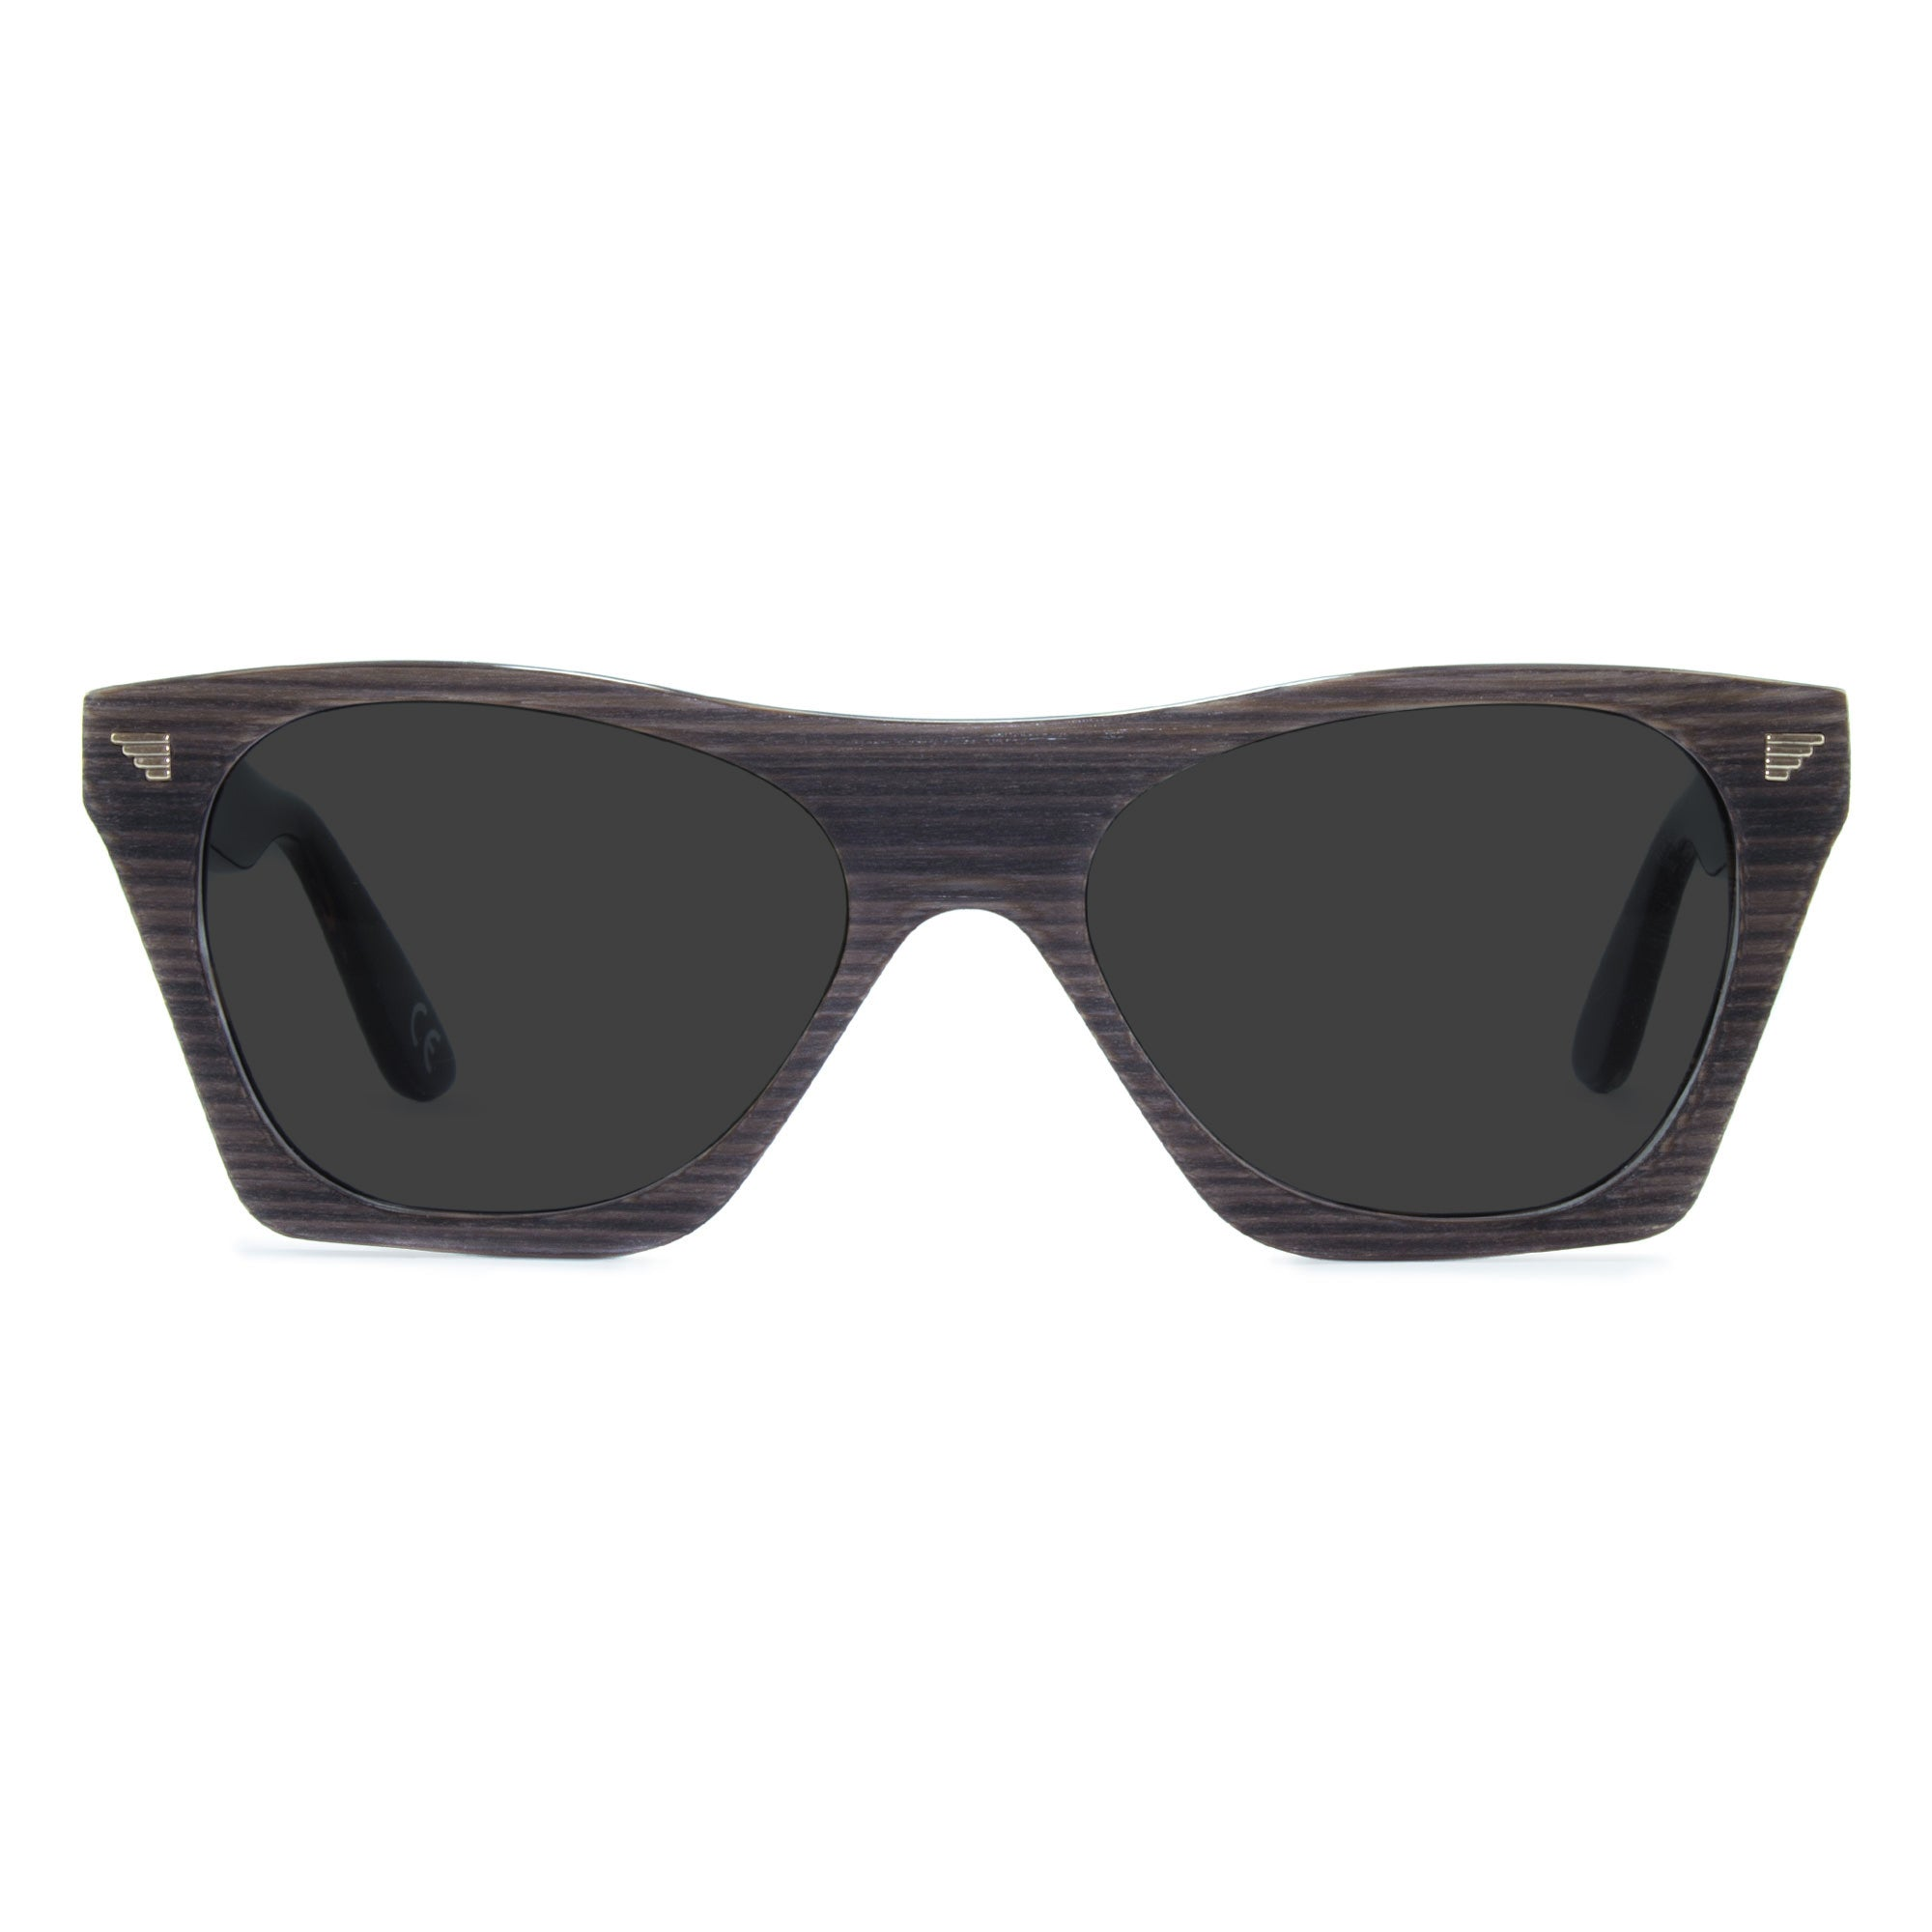 dark grey wayfarer sunglasses